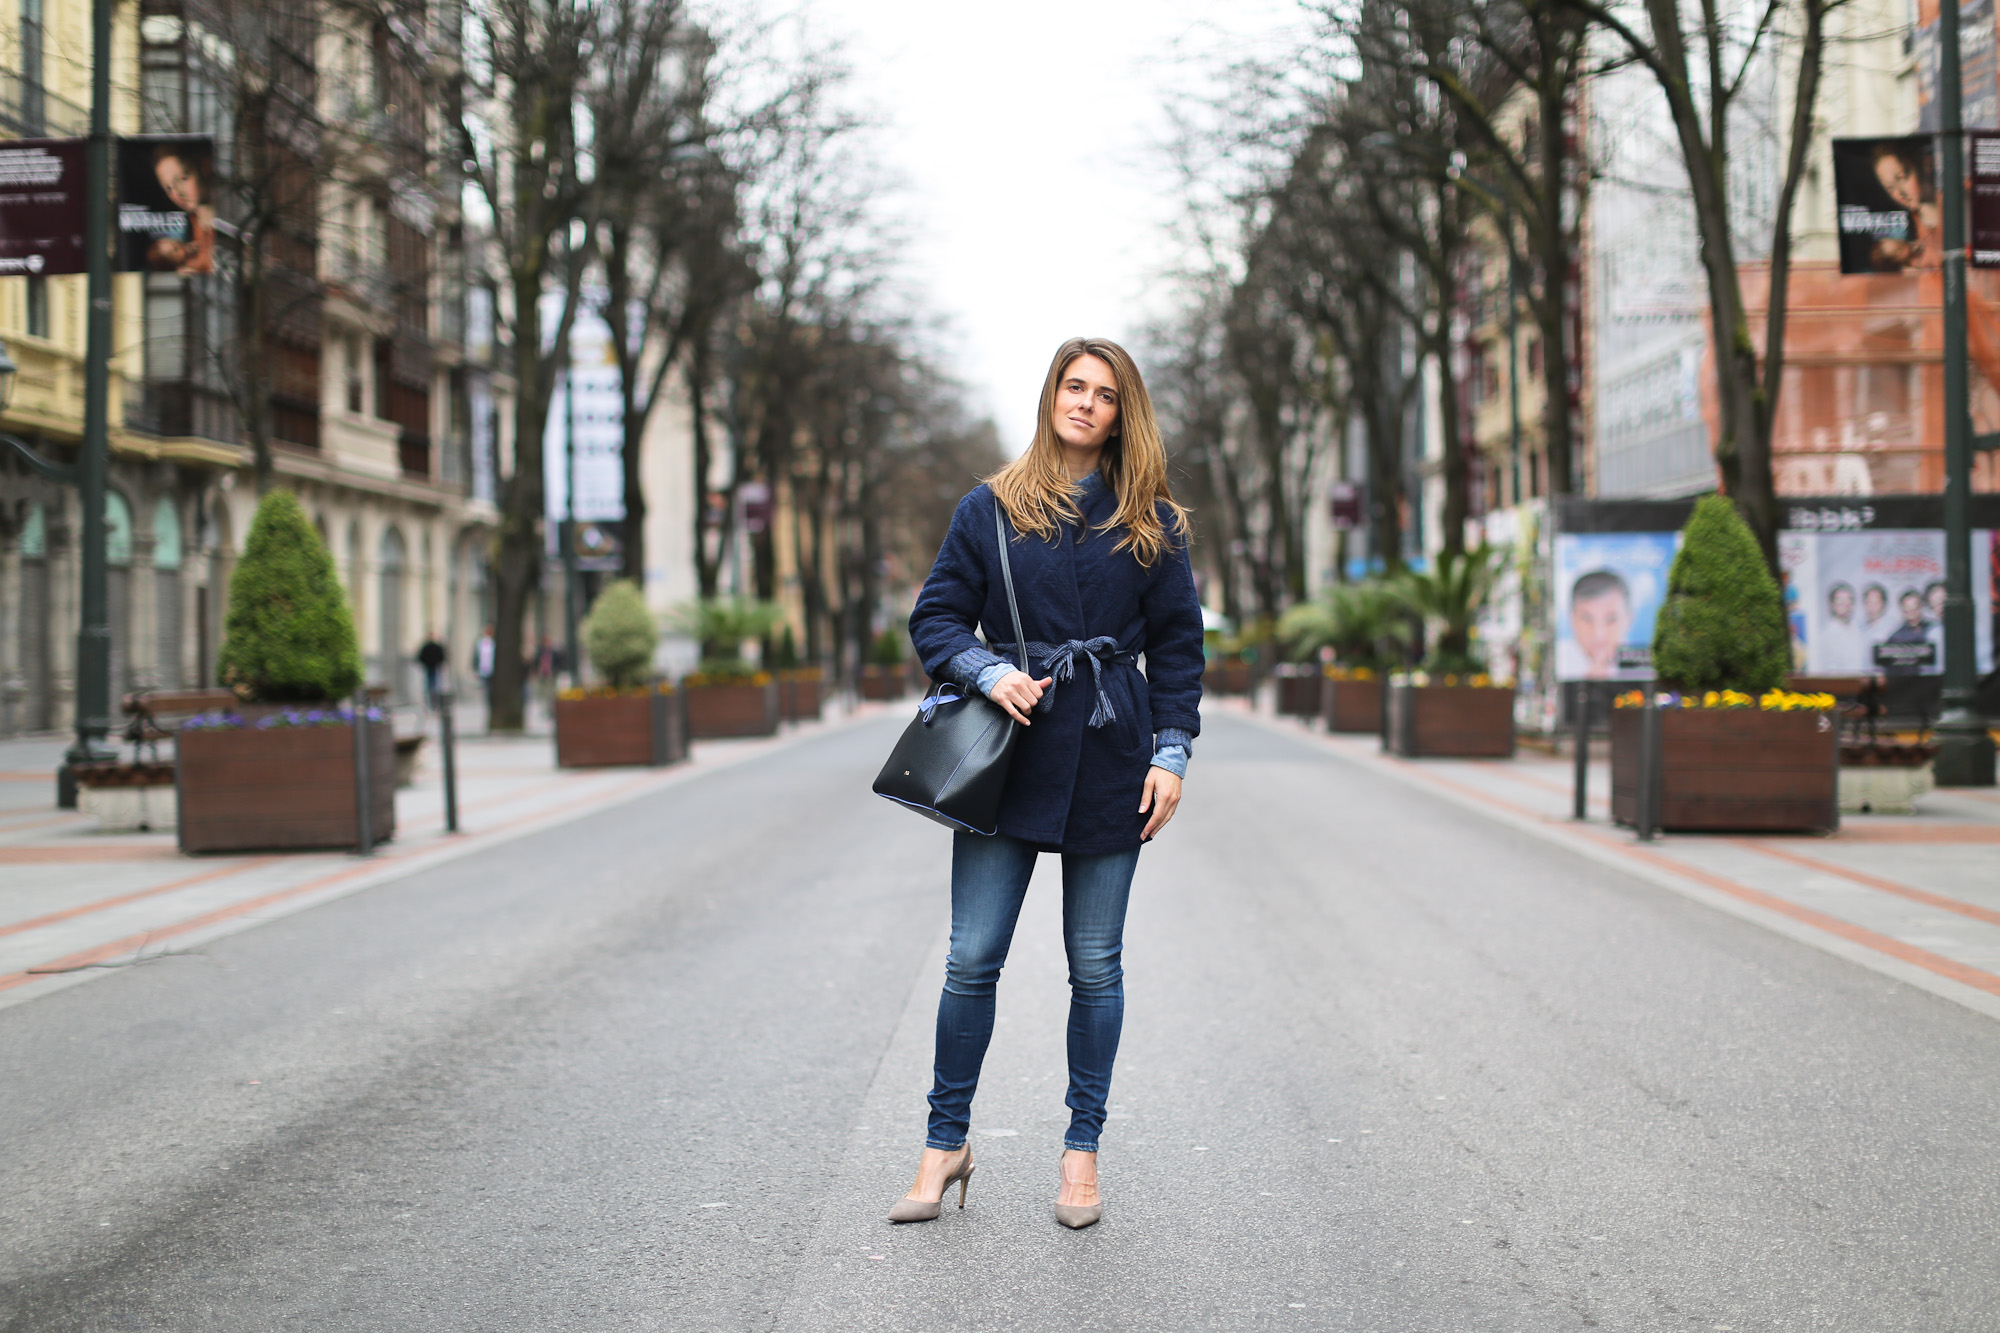 Clochet_streetstyle_pepejeans_skinny_jeans_purificaciongarcia_bucket_bag-4